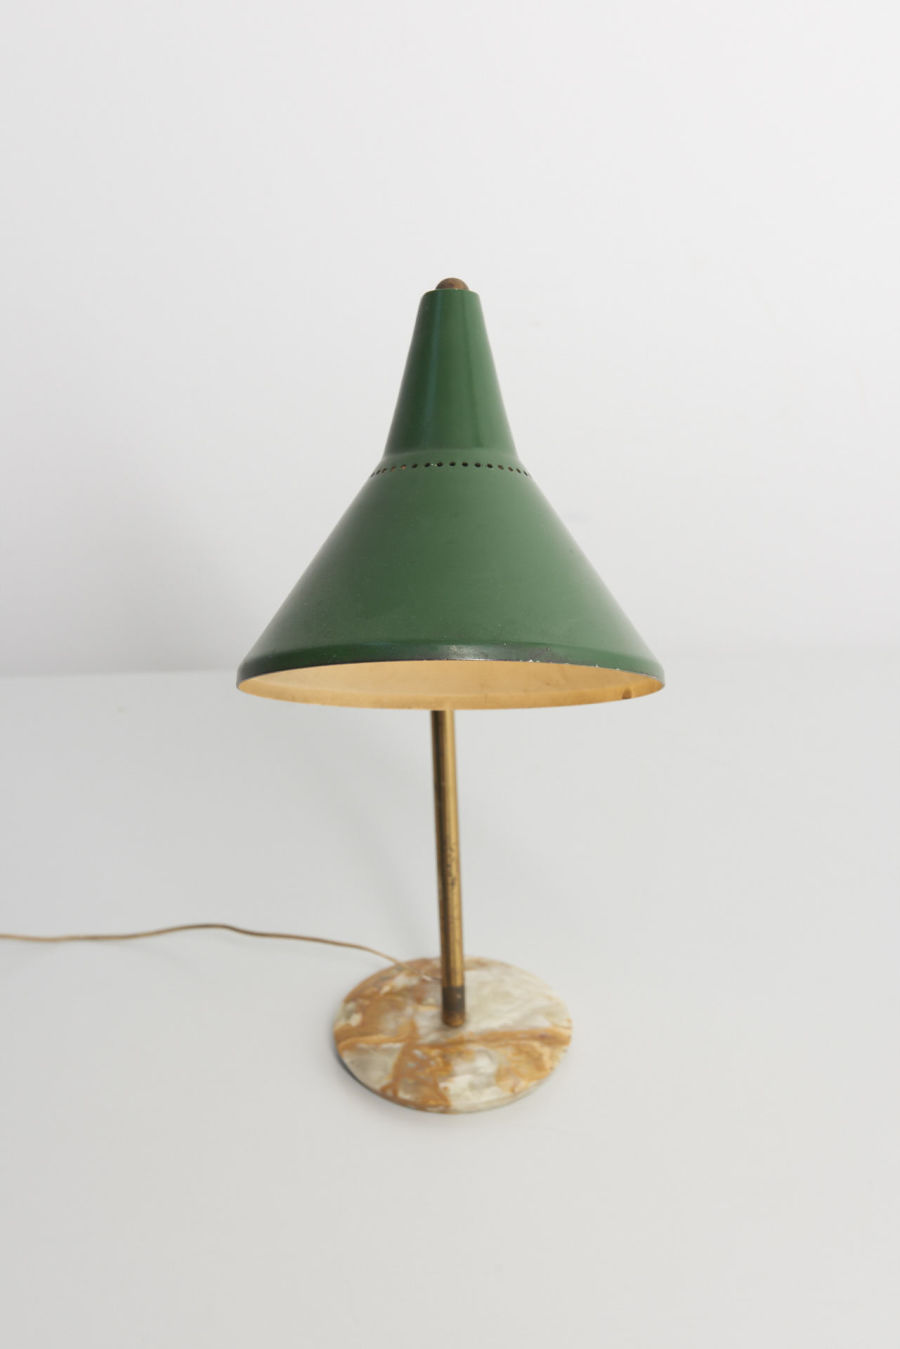 modestfurniture-vintage-2445-table-lamp-italy-marble-green-shade03